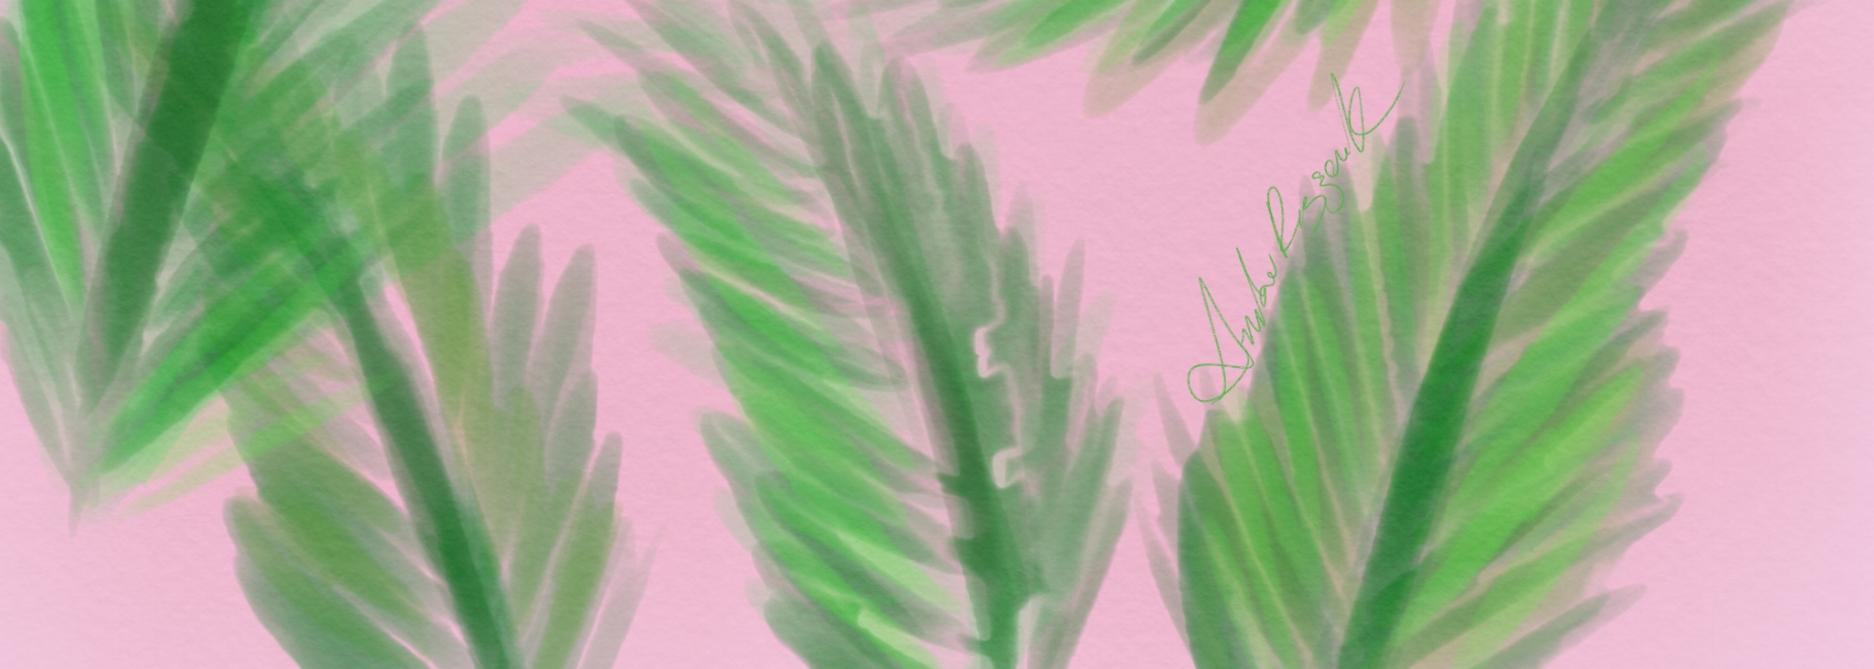 Pink n' Palms - Sit and relax under the pink and green palm motif!